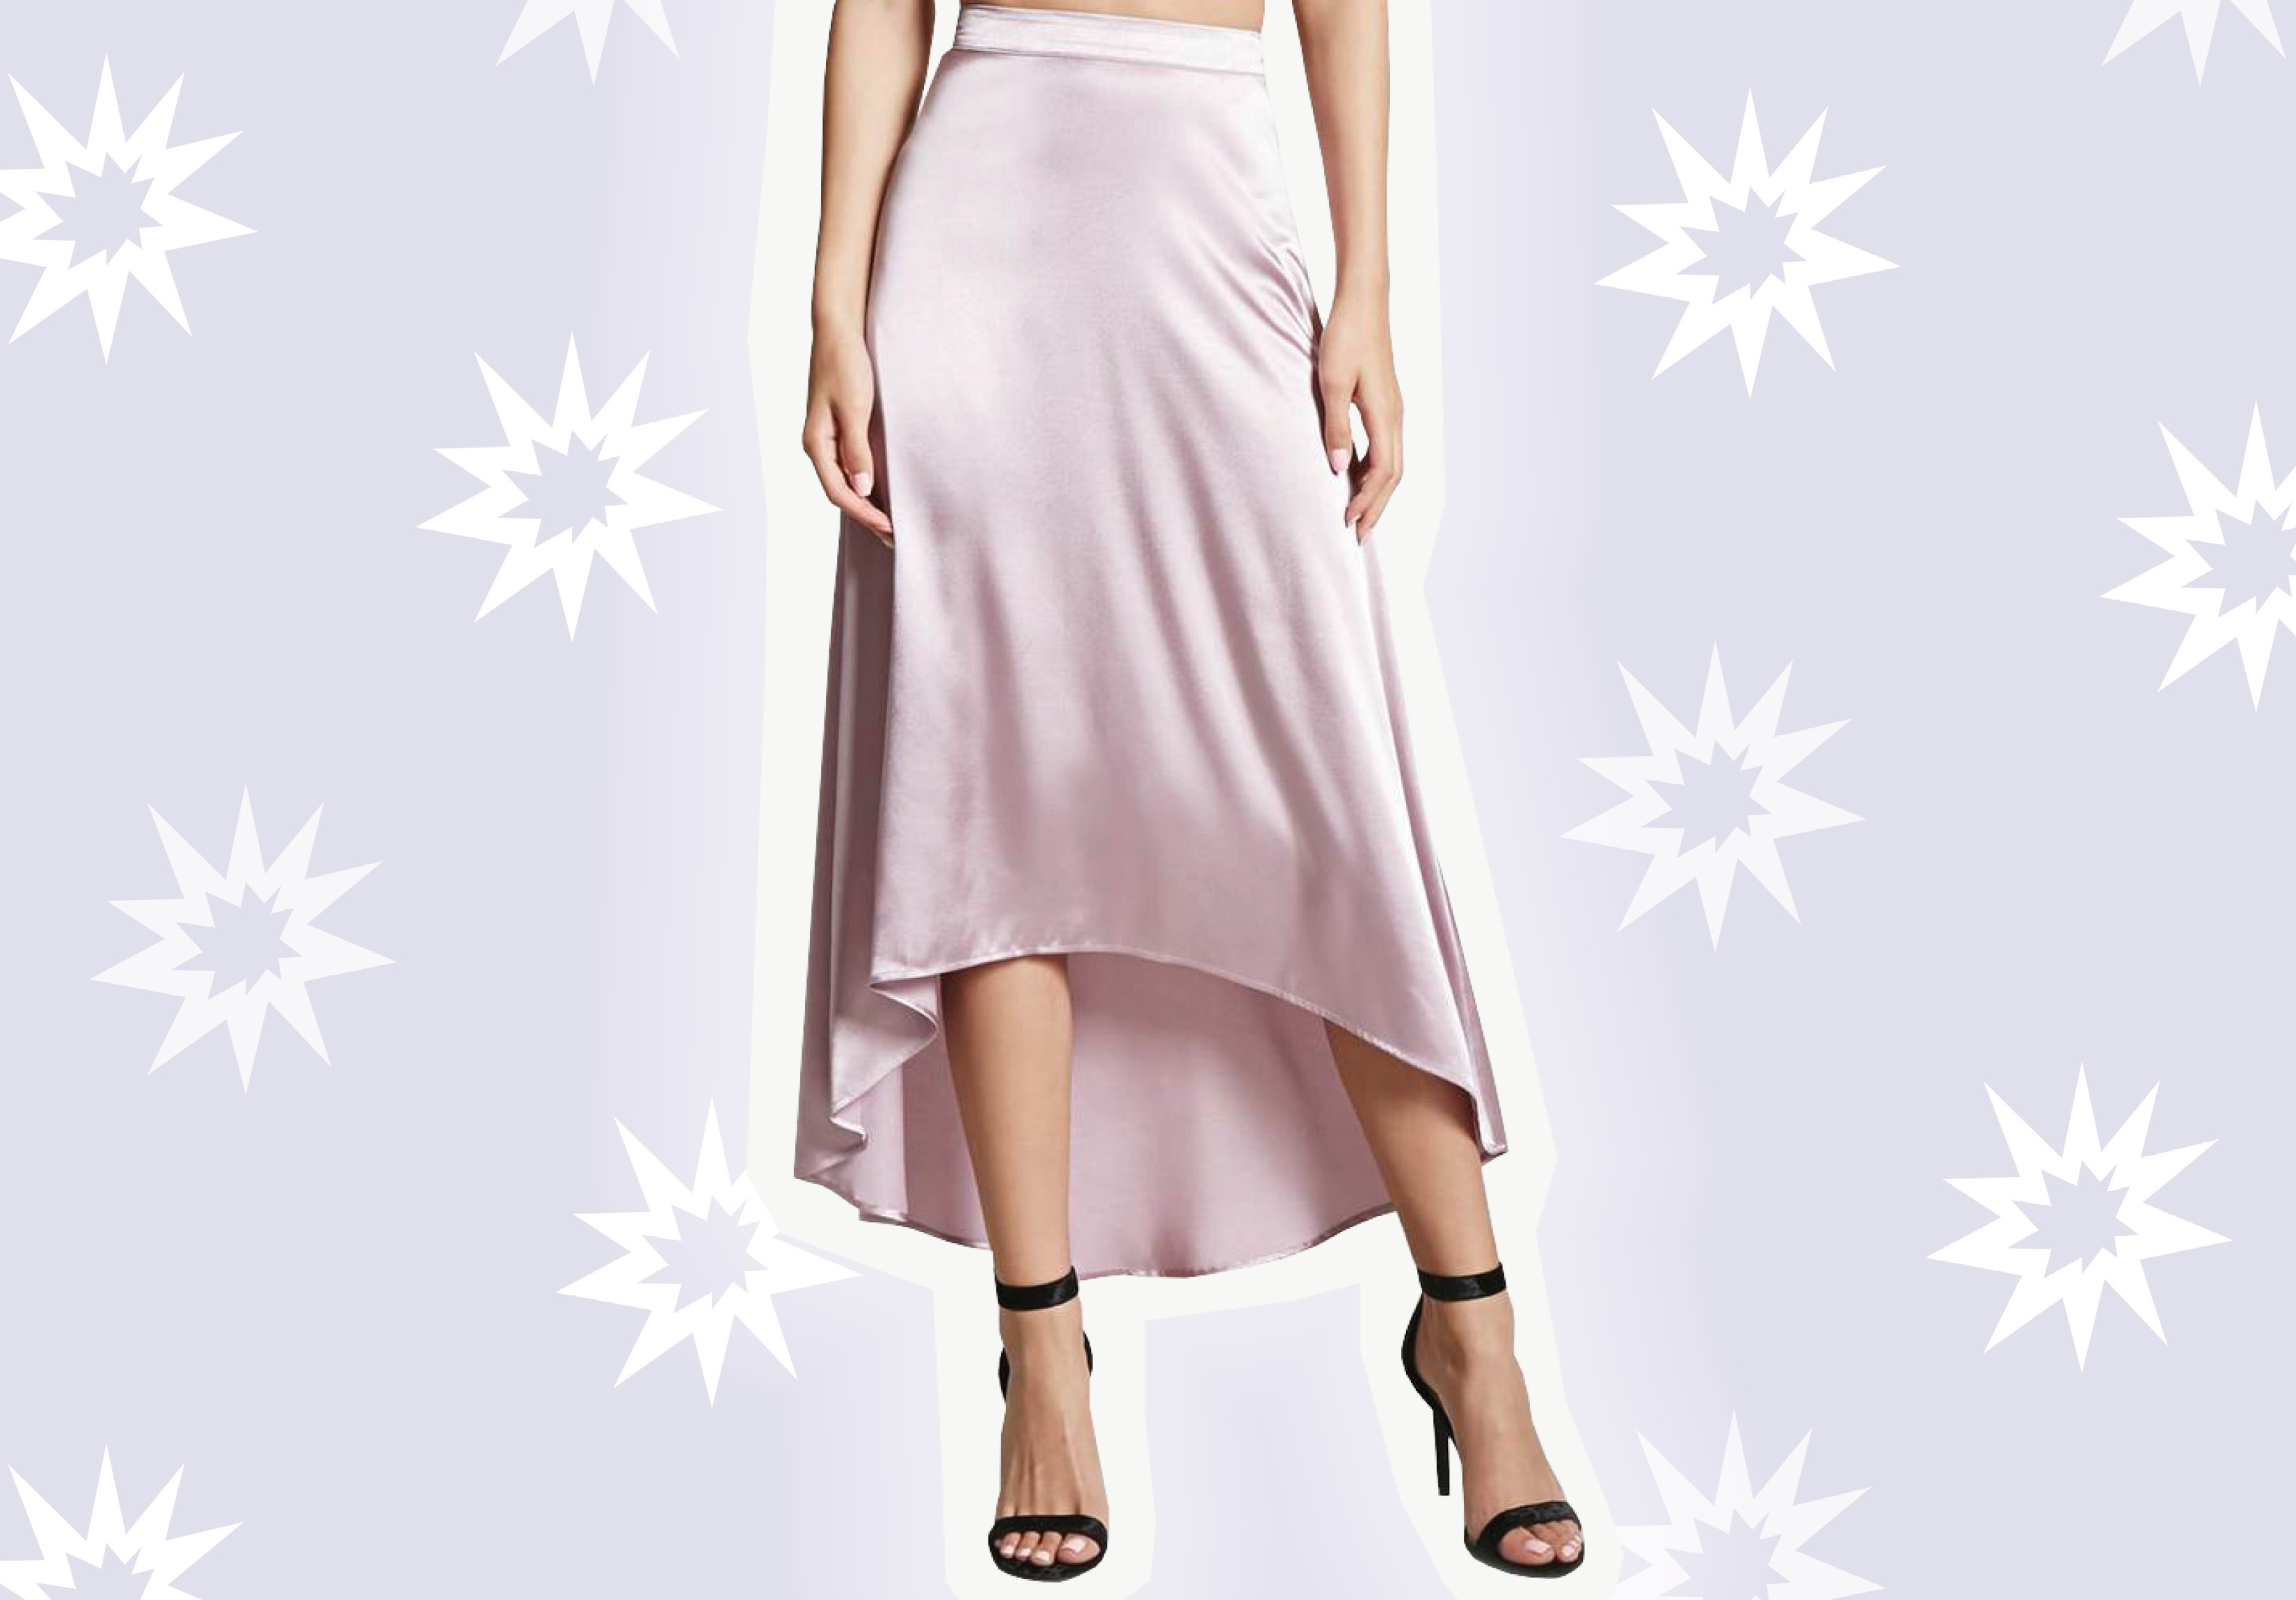 Slip skirts are shaping up to be the next street style trend